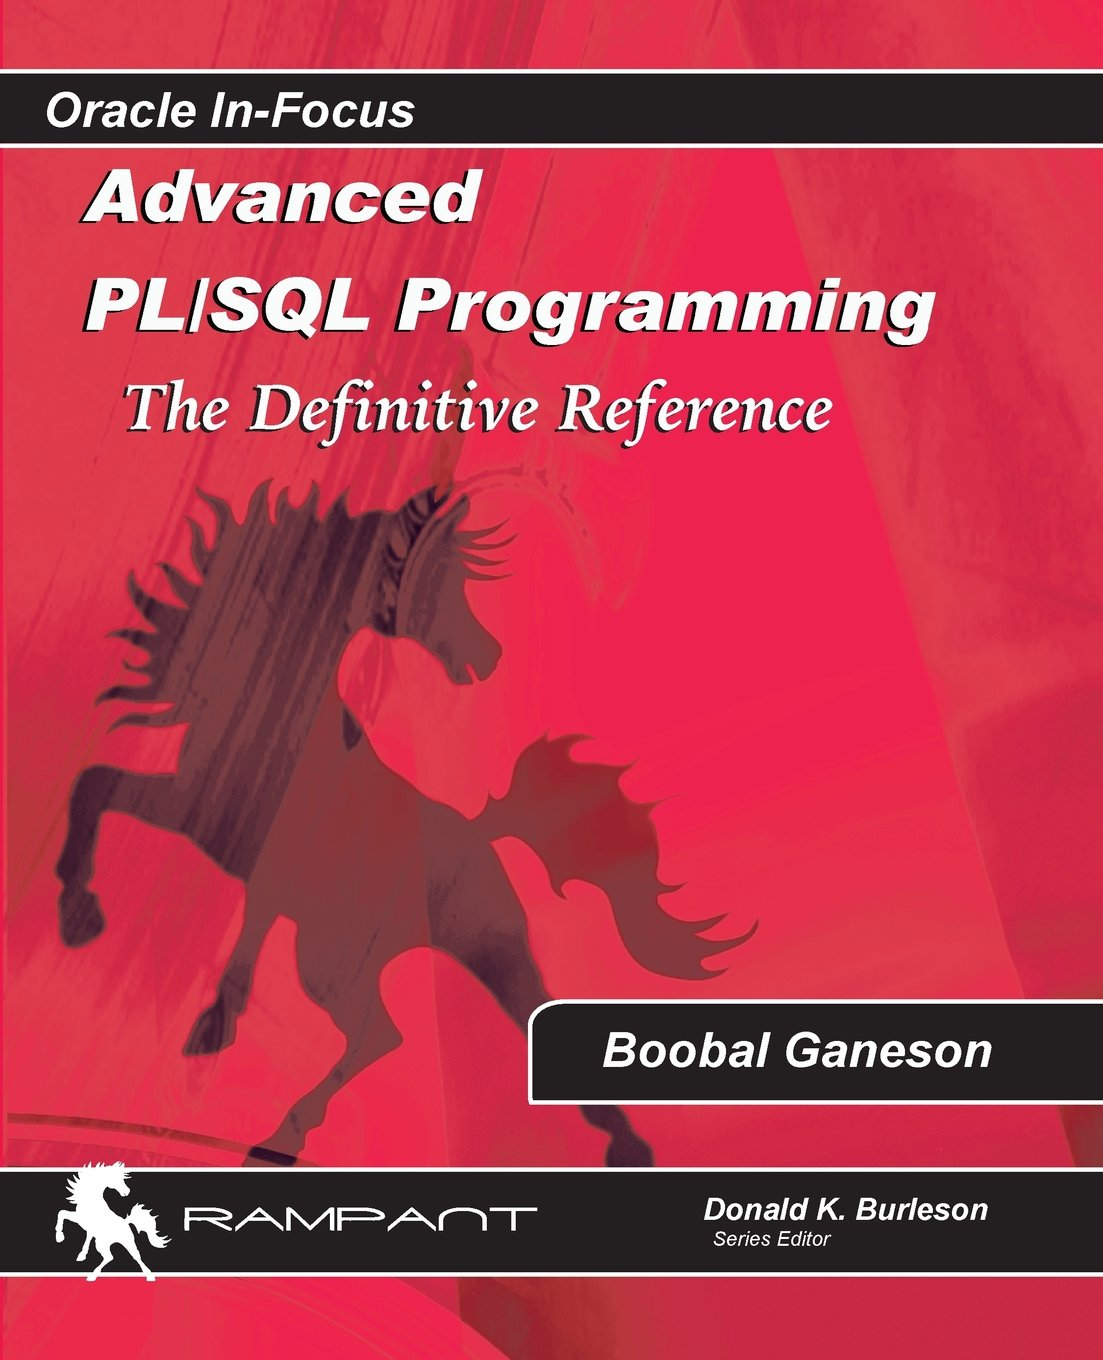 Advanced PLSQL Programming: The Definitive Reference (Oracle In Focus) (Volume 53) ebook